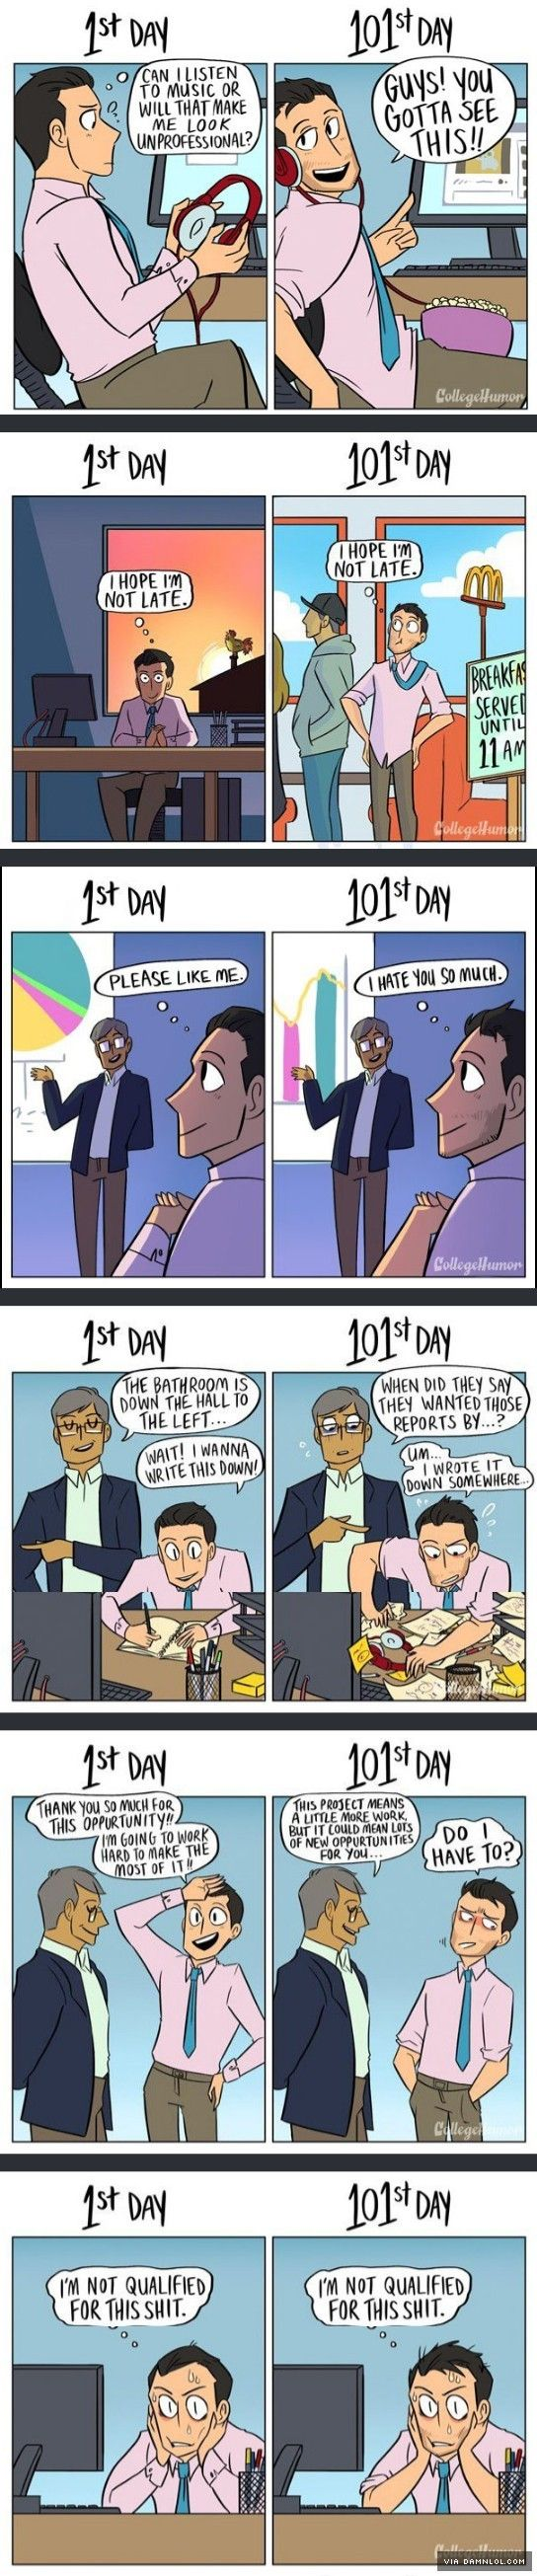 How Your Job Changes Over Time - The Best Funny Pictures